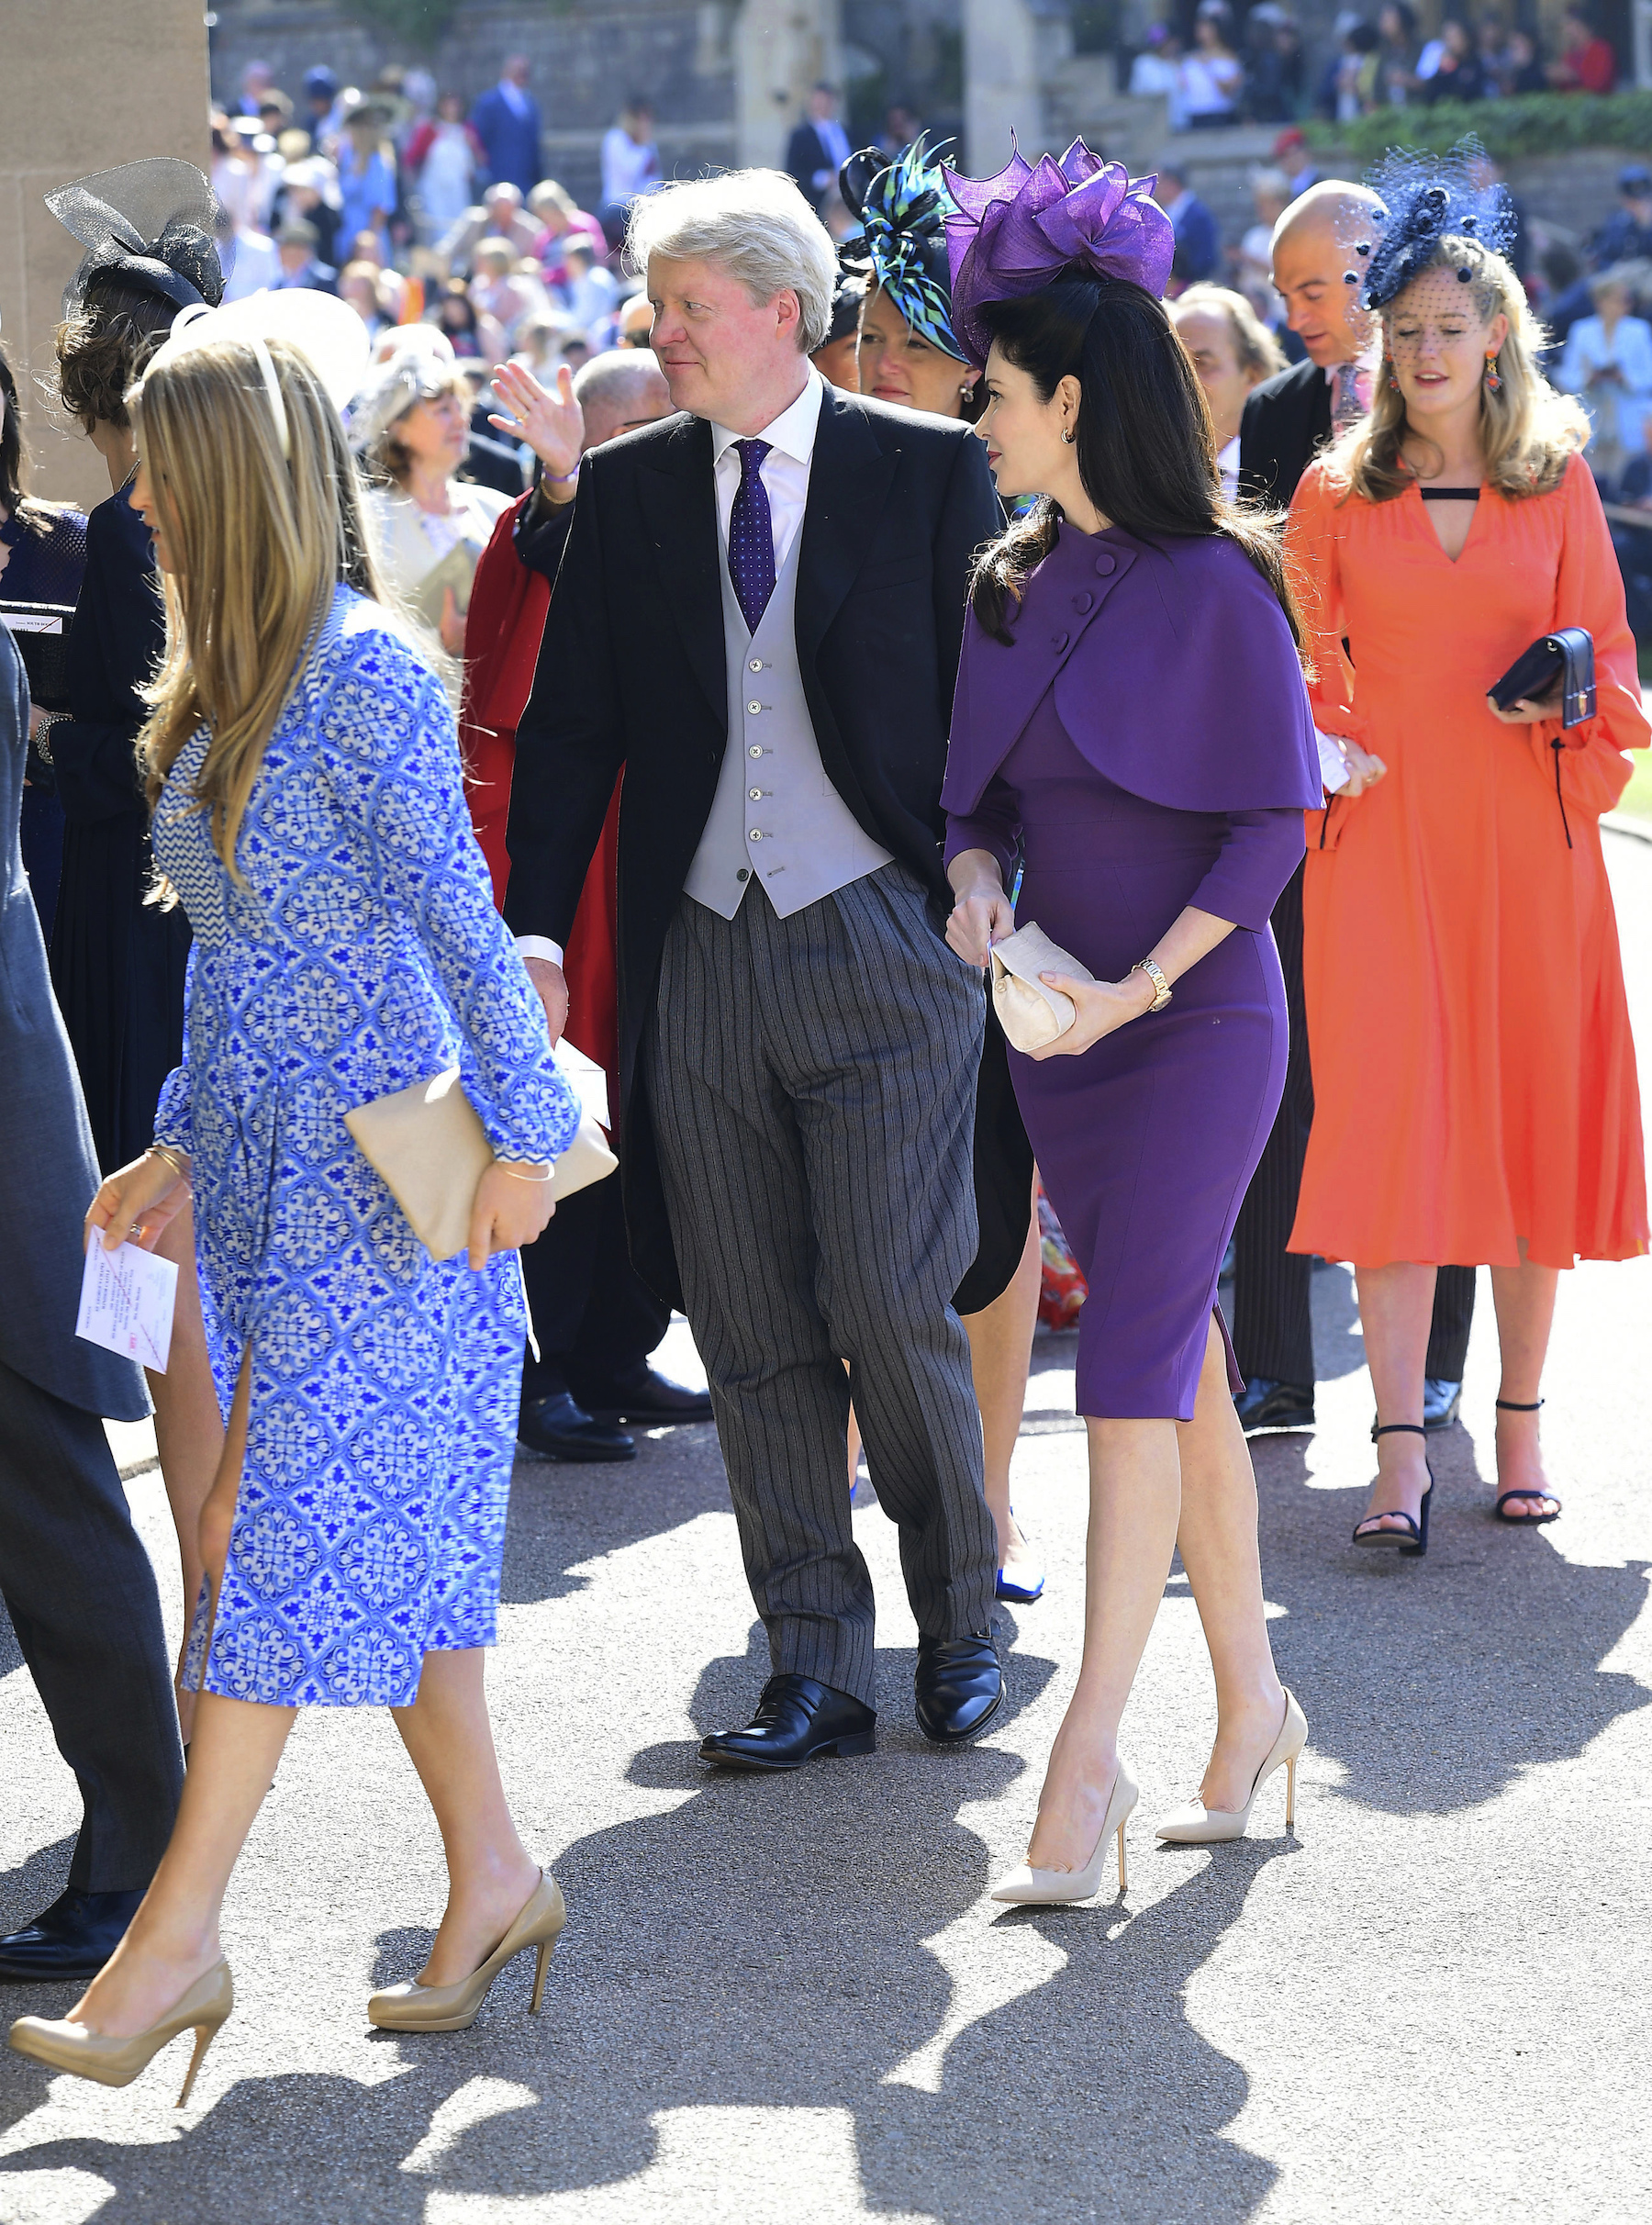 <div class='meta'><div class='origin-logo' data-origin='AP'></div><span class='caption-text' data-credit='Ian West/PA Wire'>Charles Spencer (centre) arrives at St George's Chapel at Windsor Castle for the wedding of Meghan Markle and Prince Harry.</span></div>